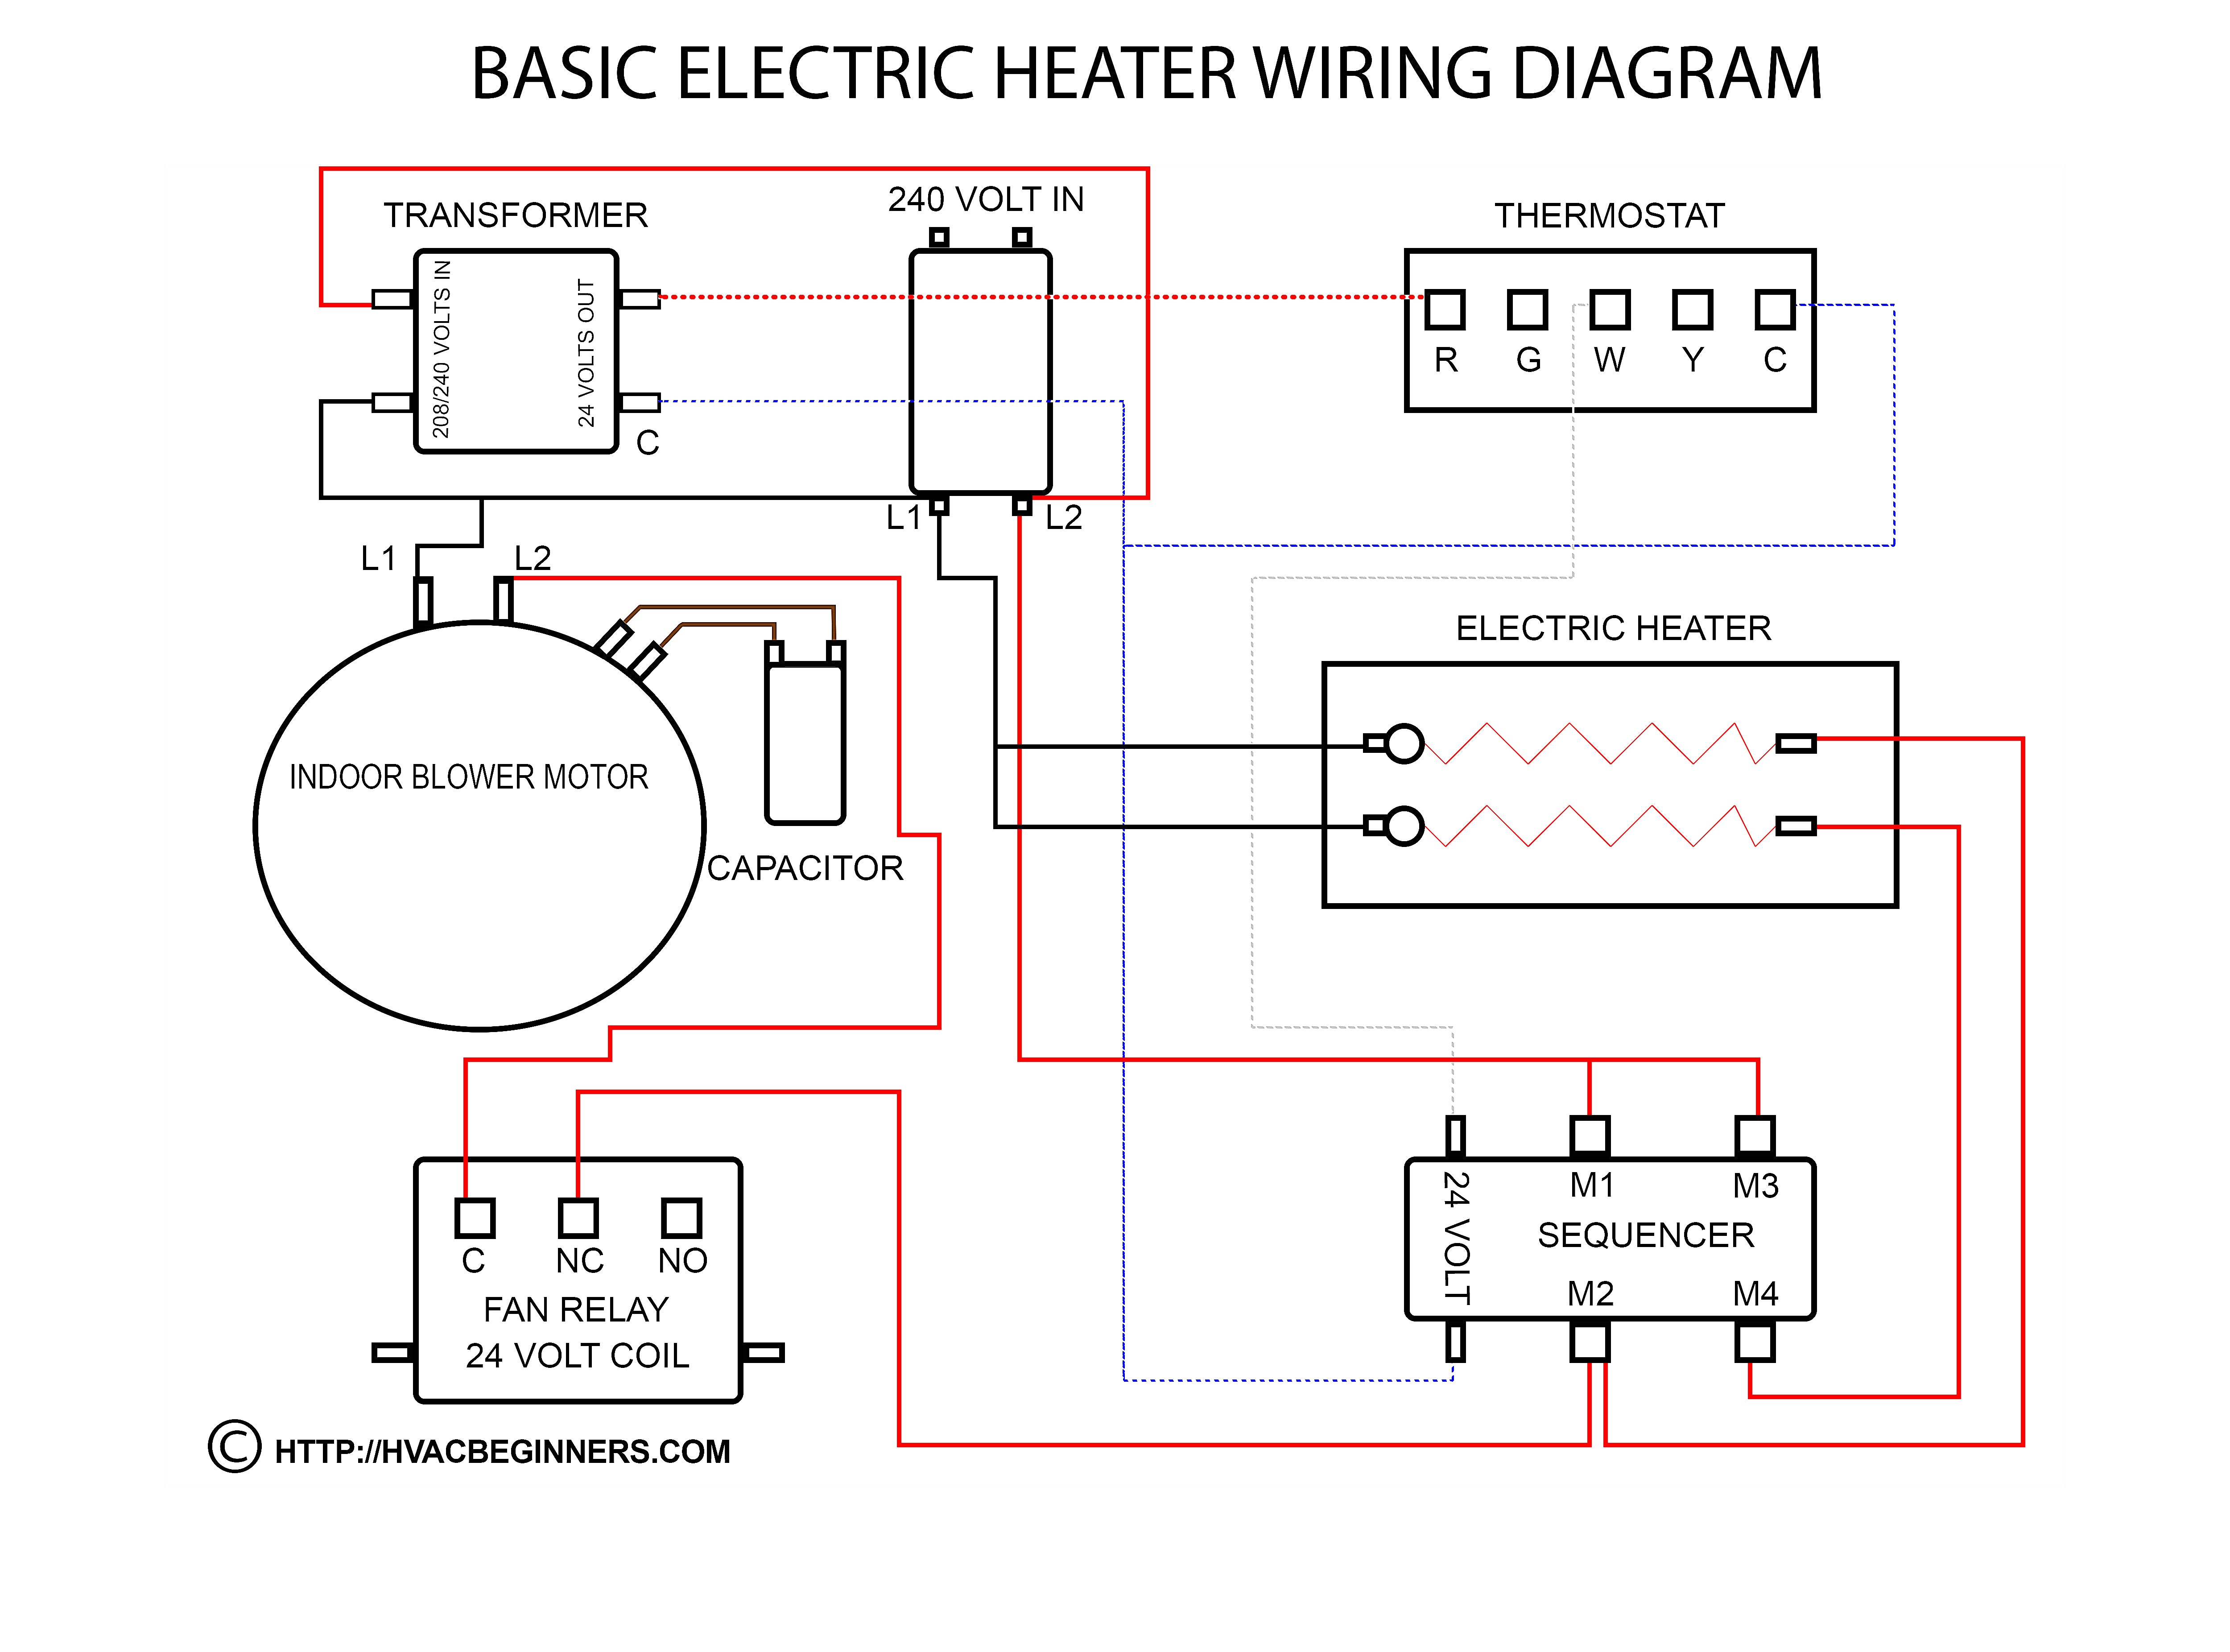 heating and cooling thermostat wiring diagram Download-Gas Furnace thermostat Wiring Diagram Rheem thermostat Wiring Diagram Inspirational Gas Furnace Wiring Diagram Excellent 3-e